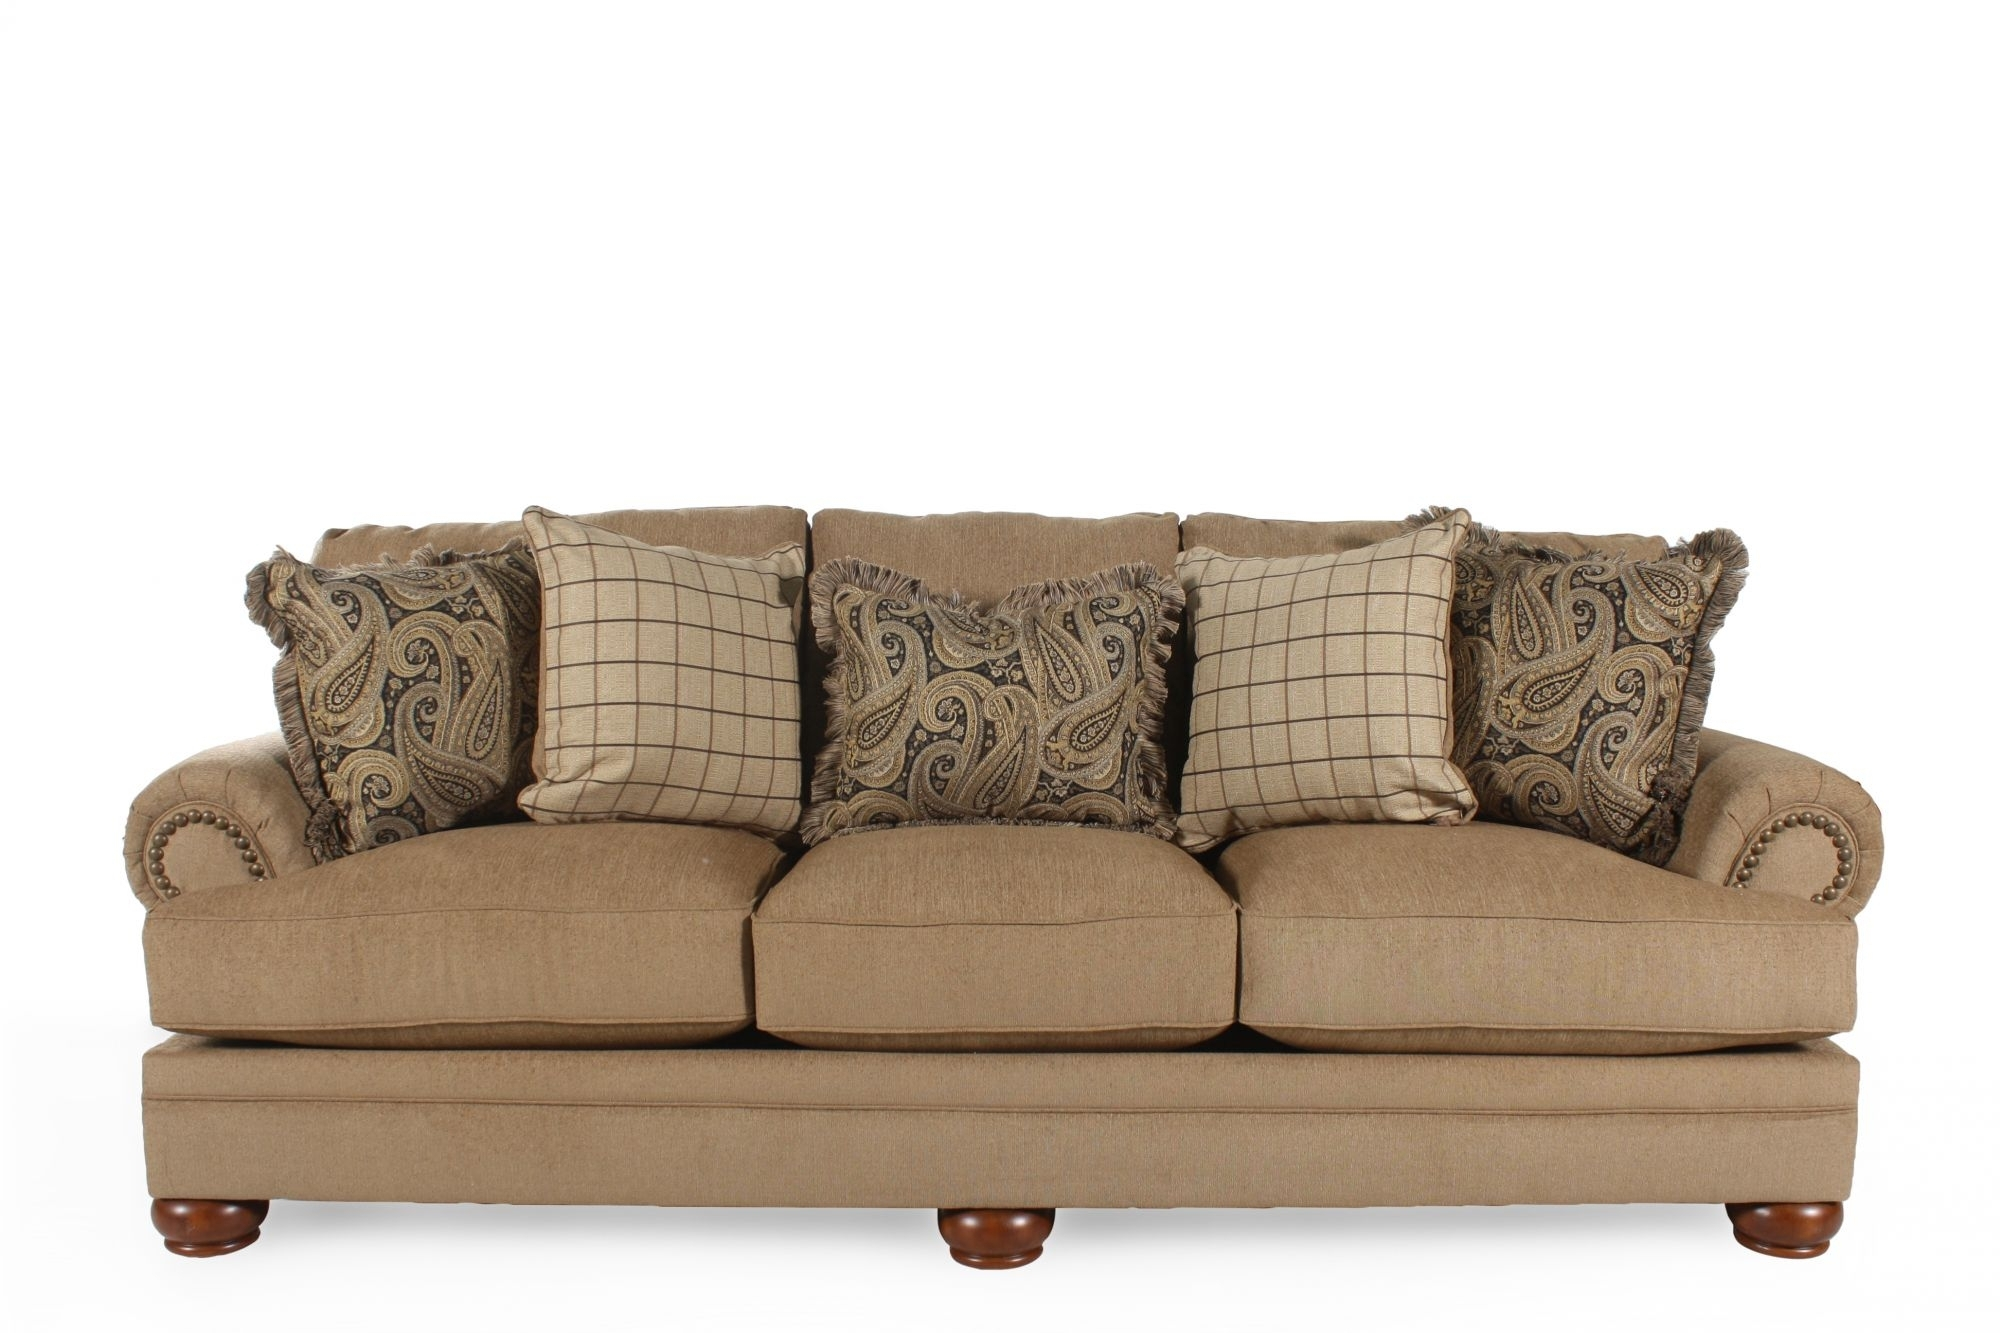 Modern Crypton Sectional Sofa Furniture On Bedroom Ideas Categories For Scarborough Sectional Sofas (Image 7 of 10)